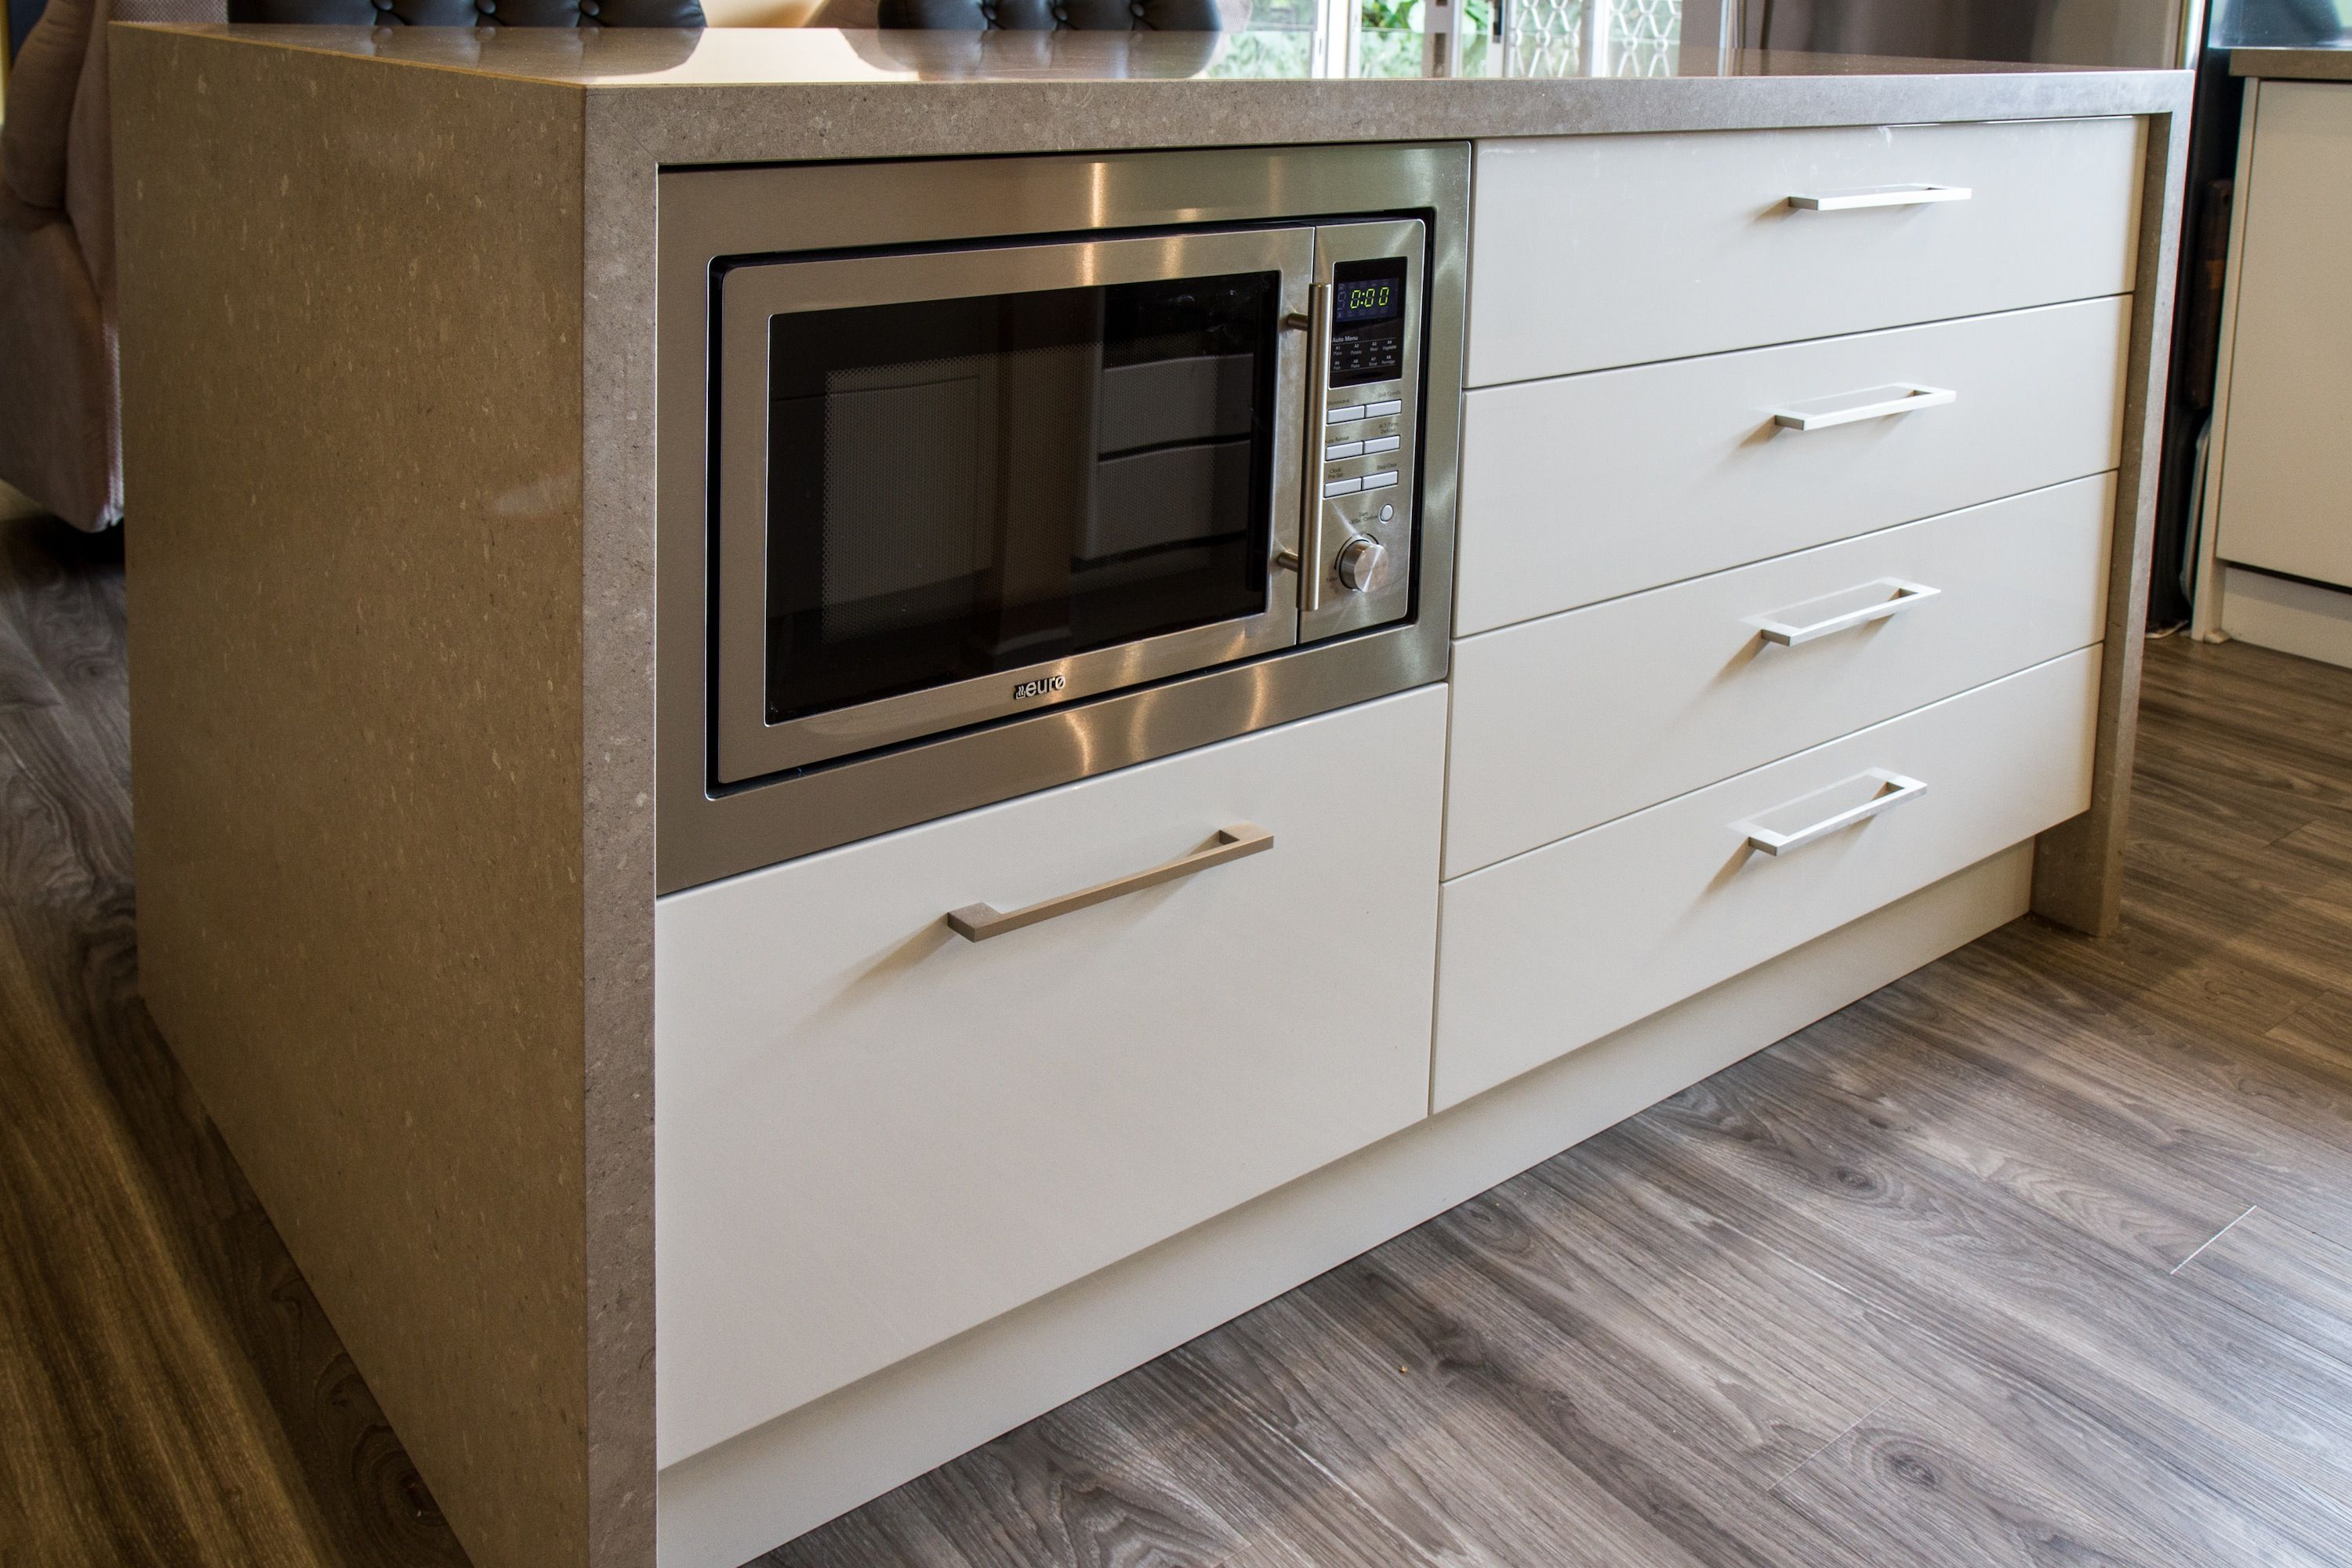 Island Bench Built In Microwave Small Contemporary Kitchen Www Thekitchendesigncen Built In Microwave Cabinet Built In Microwave Contemporary Kitchen Design